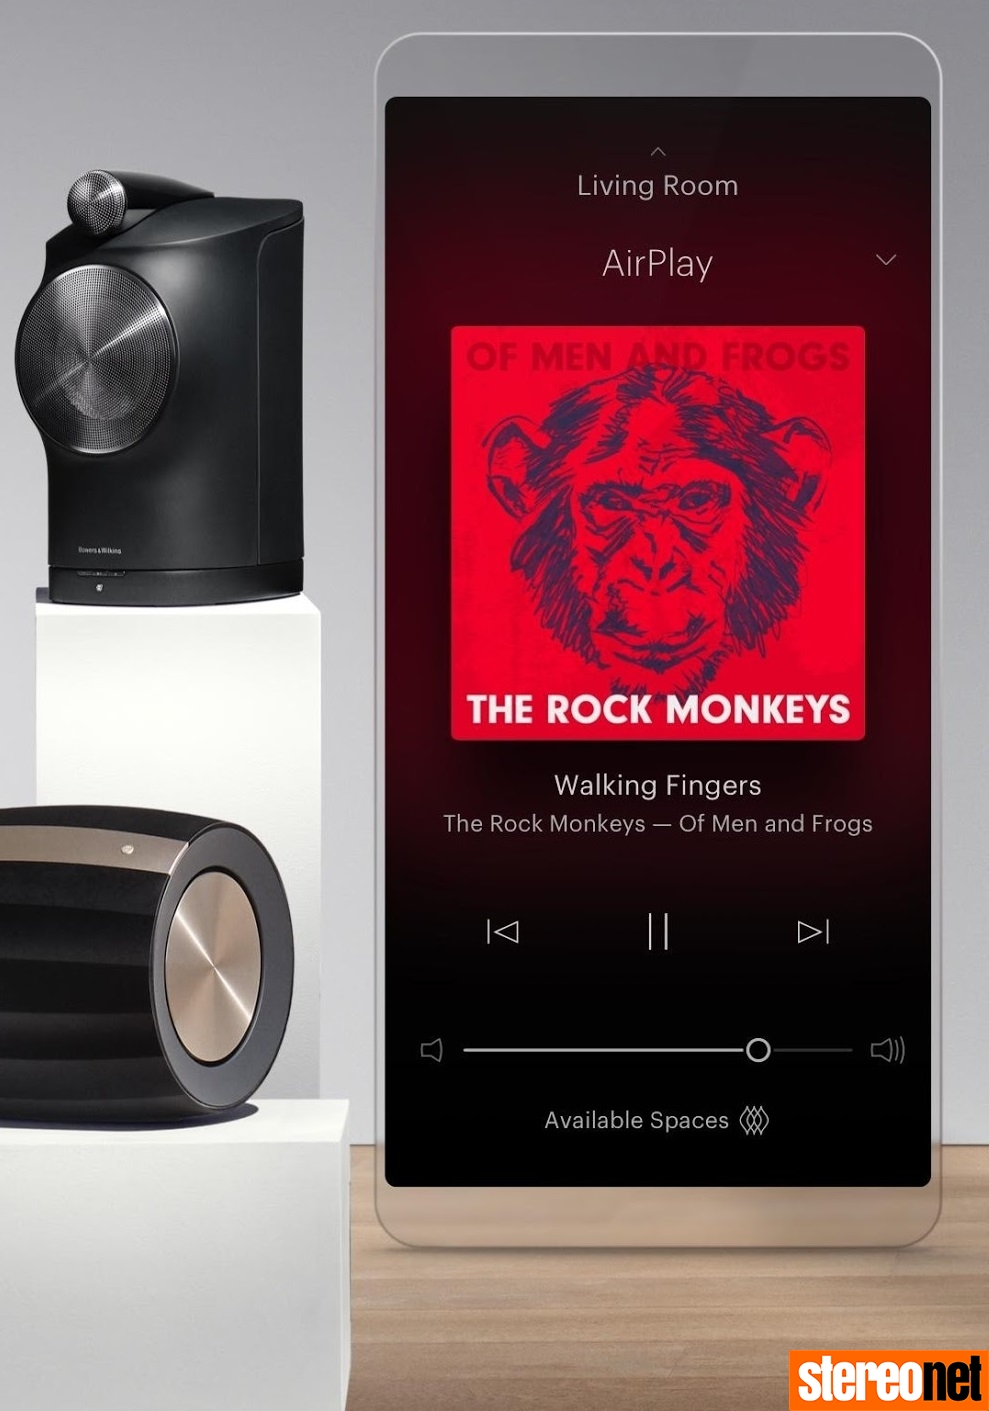 Bowers and Wilkins New App 2020